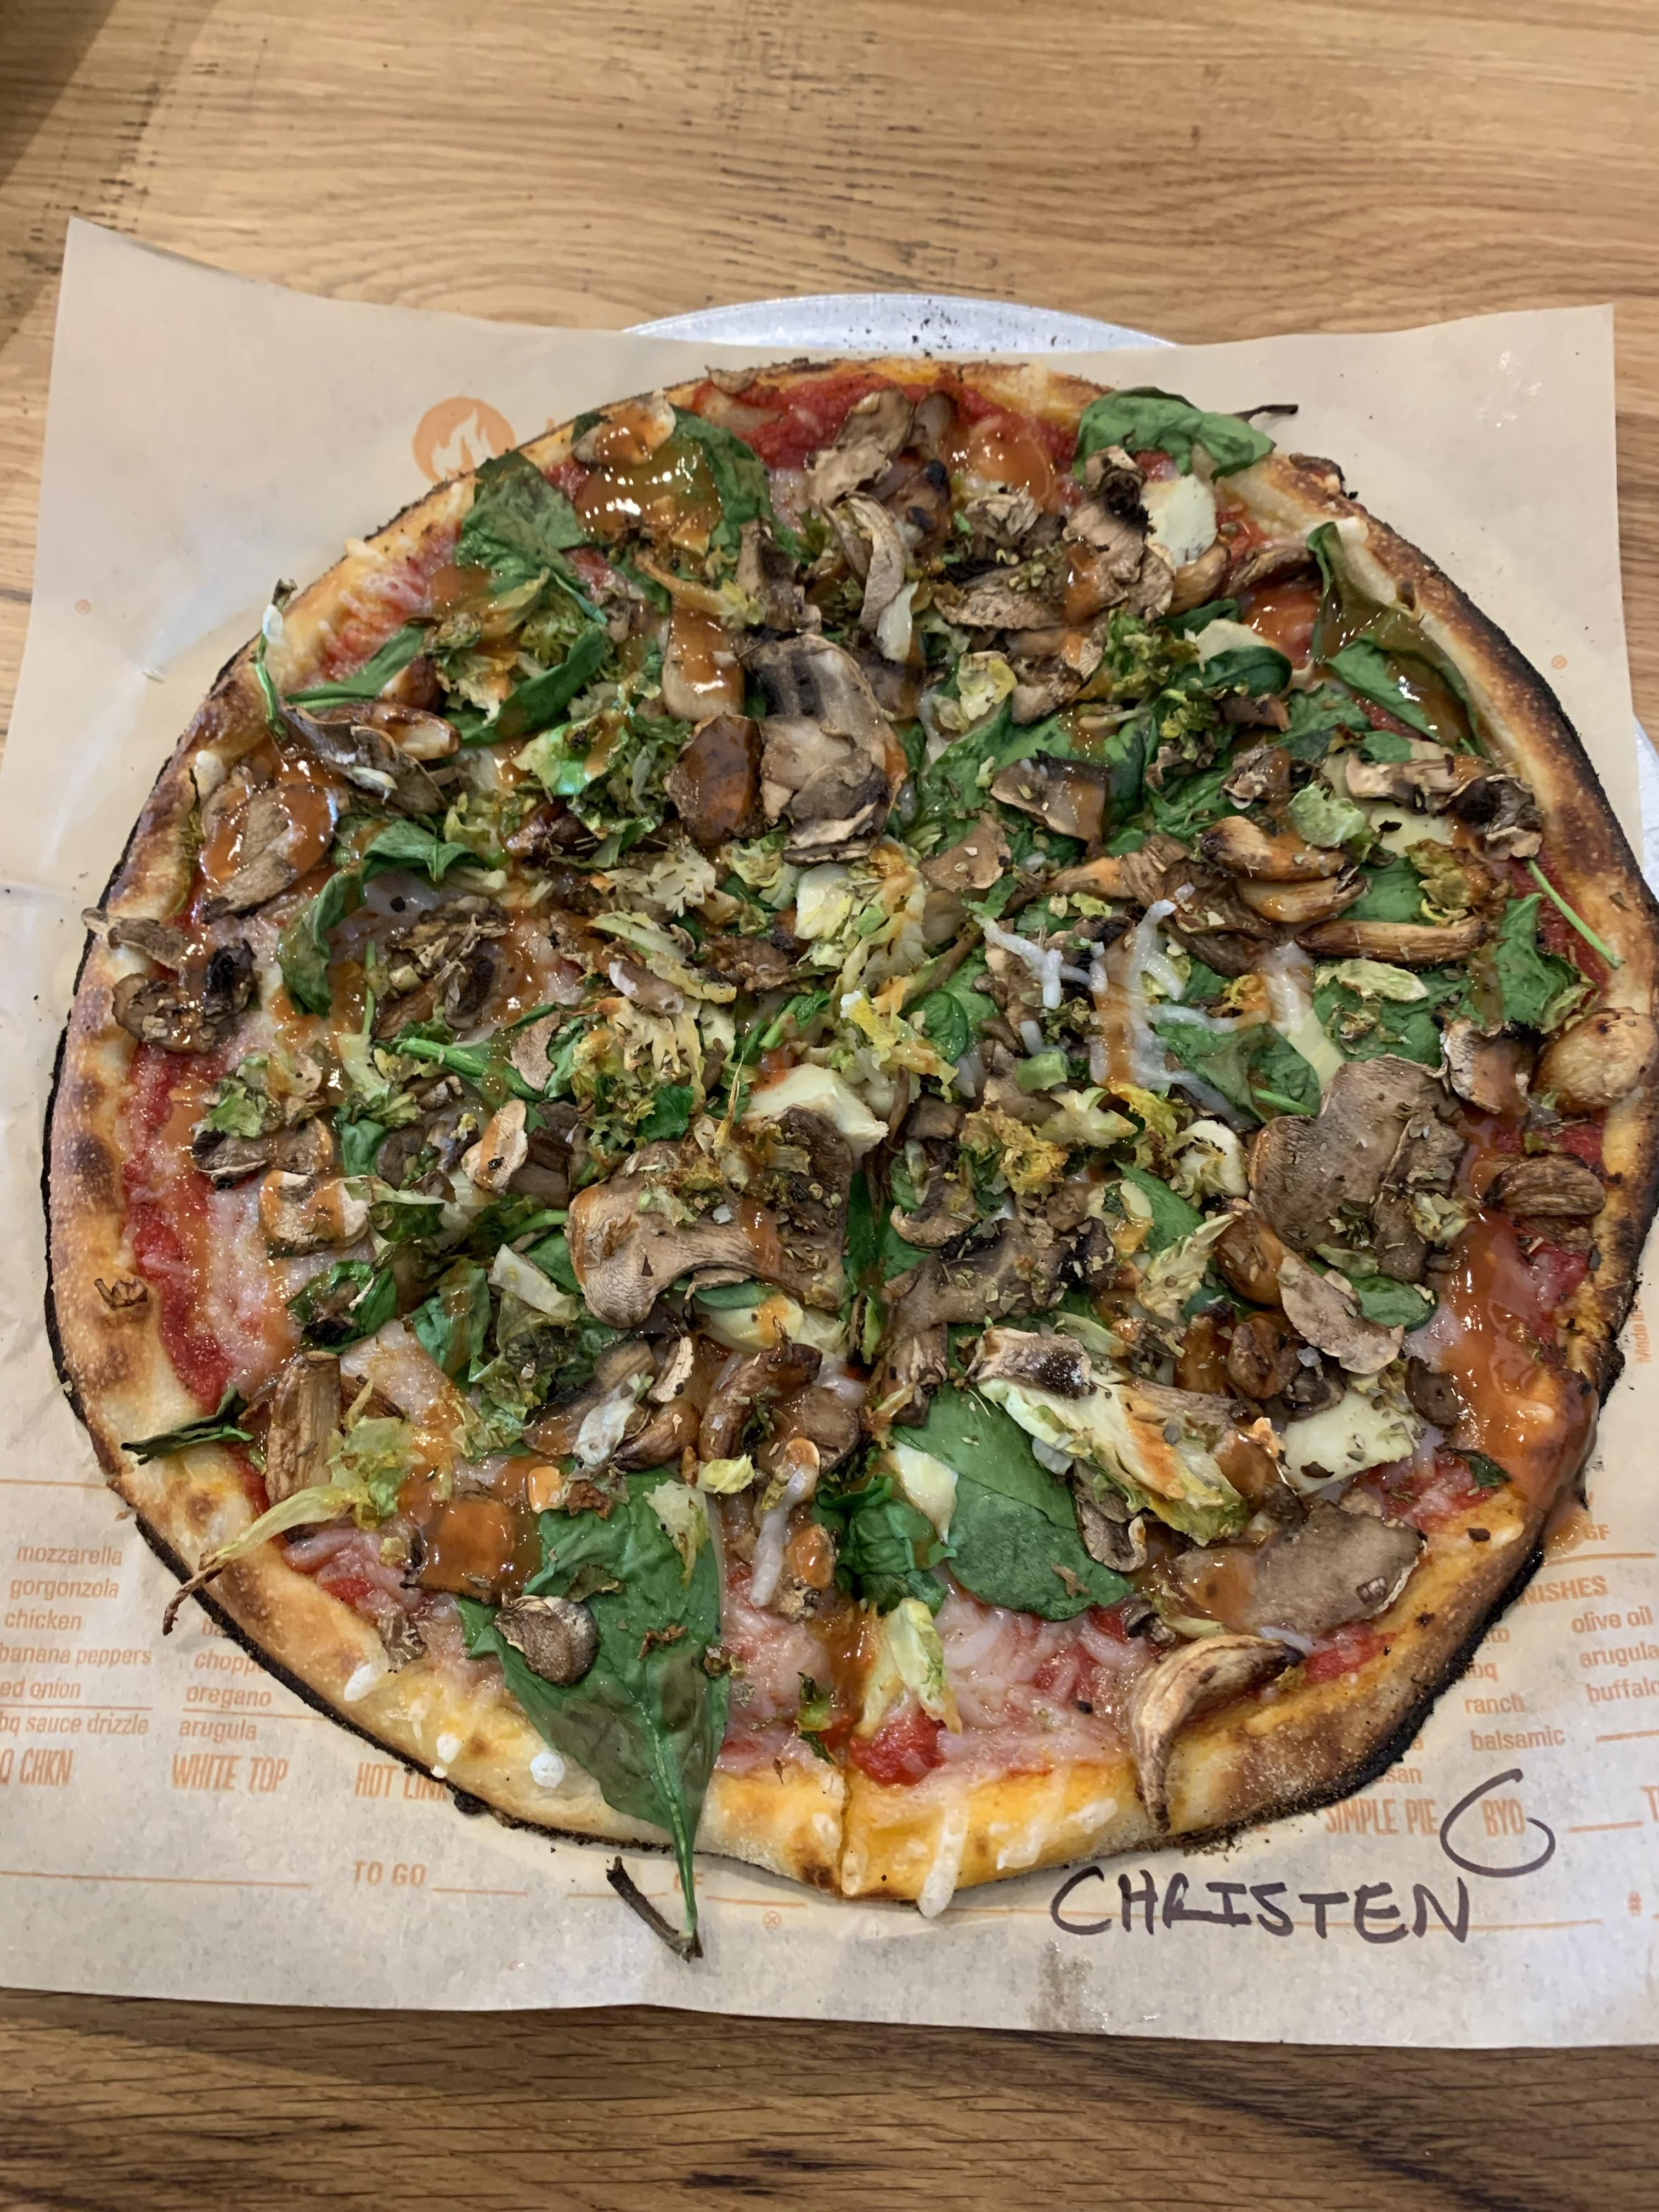 Build Your Own Pizza With Red Sauce Spinach Artichokes Roasted Garlic Mushrooms Vegan Cheese And A Buffalo Sauce Drizzle Blaze Pizza Rochester Ny